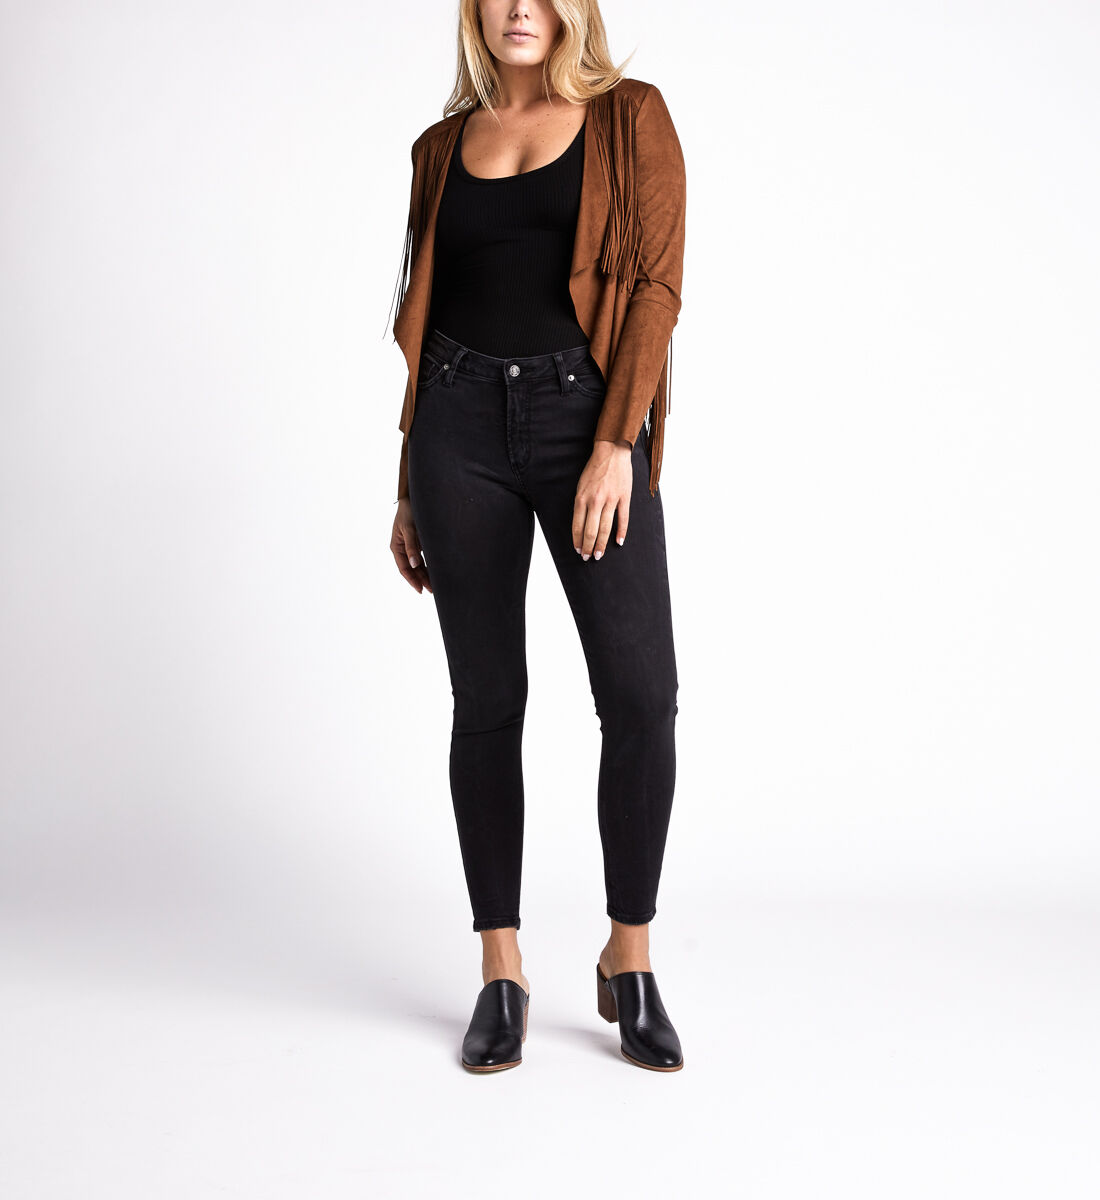 Most Wanted Mid Rise Skinny Leg Jeans,Black Alt Image 1